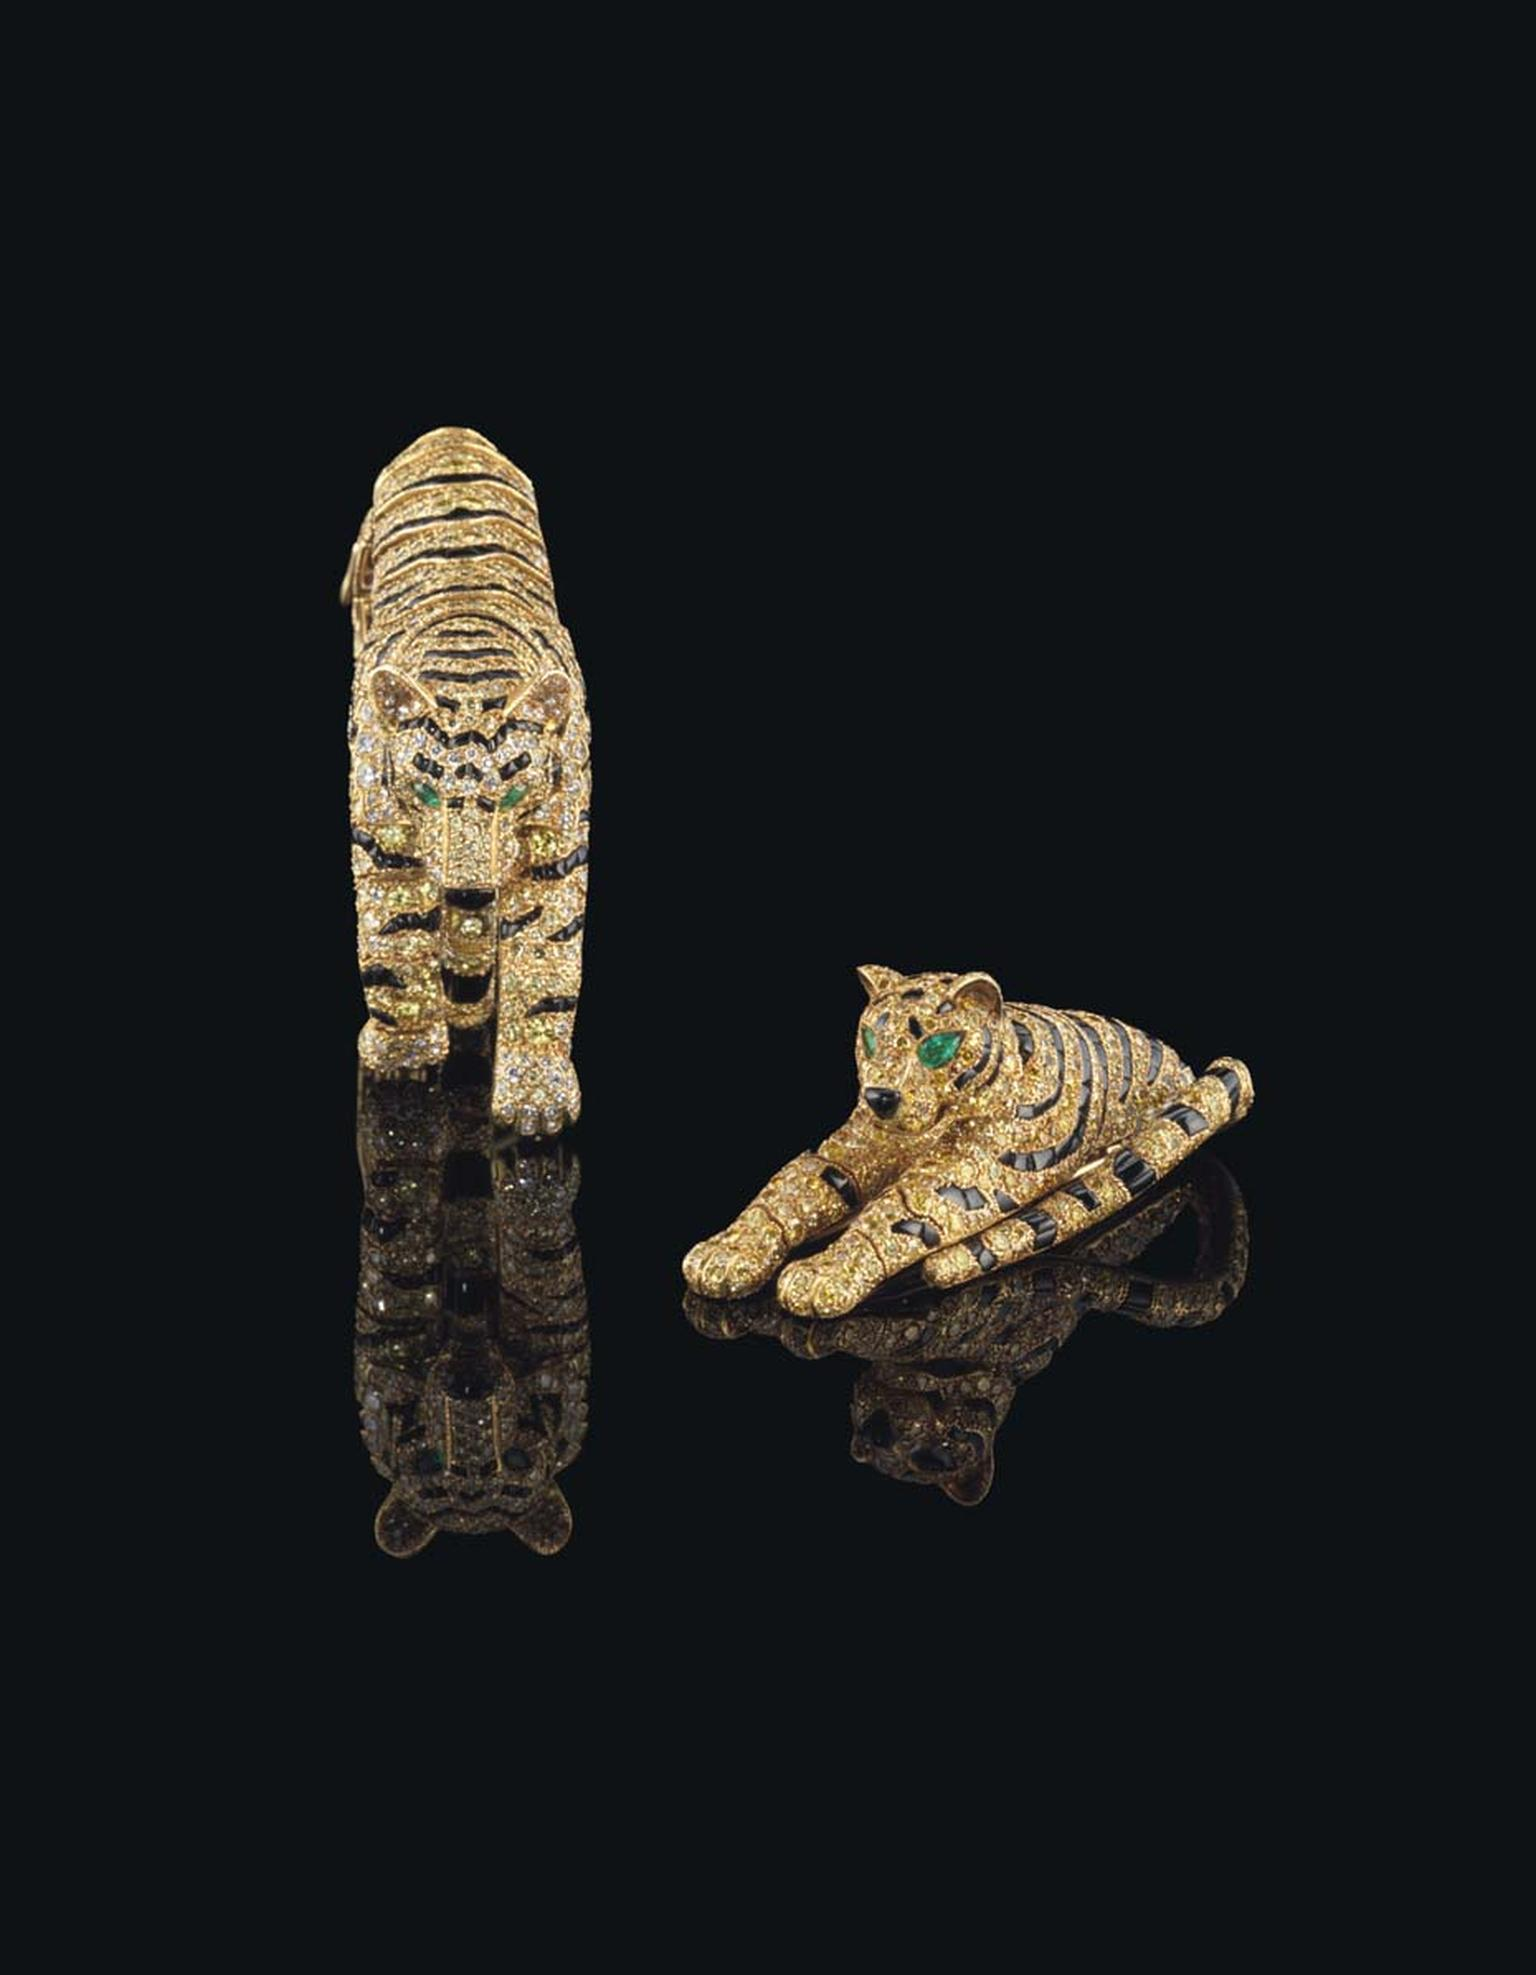 A Cartier Tiger brooch and bracelet with diamonds, onyx and emeralds, once owned by the Duchess of Windsor, sold for $3.14 million at Christie's Geneva after a tense bidding battle between collectors both on the phone and in the auction room.